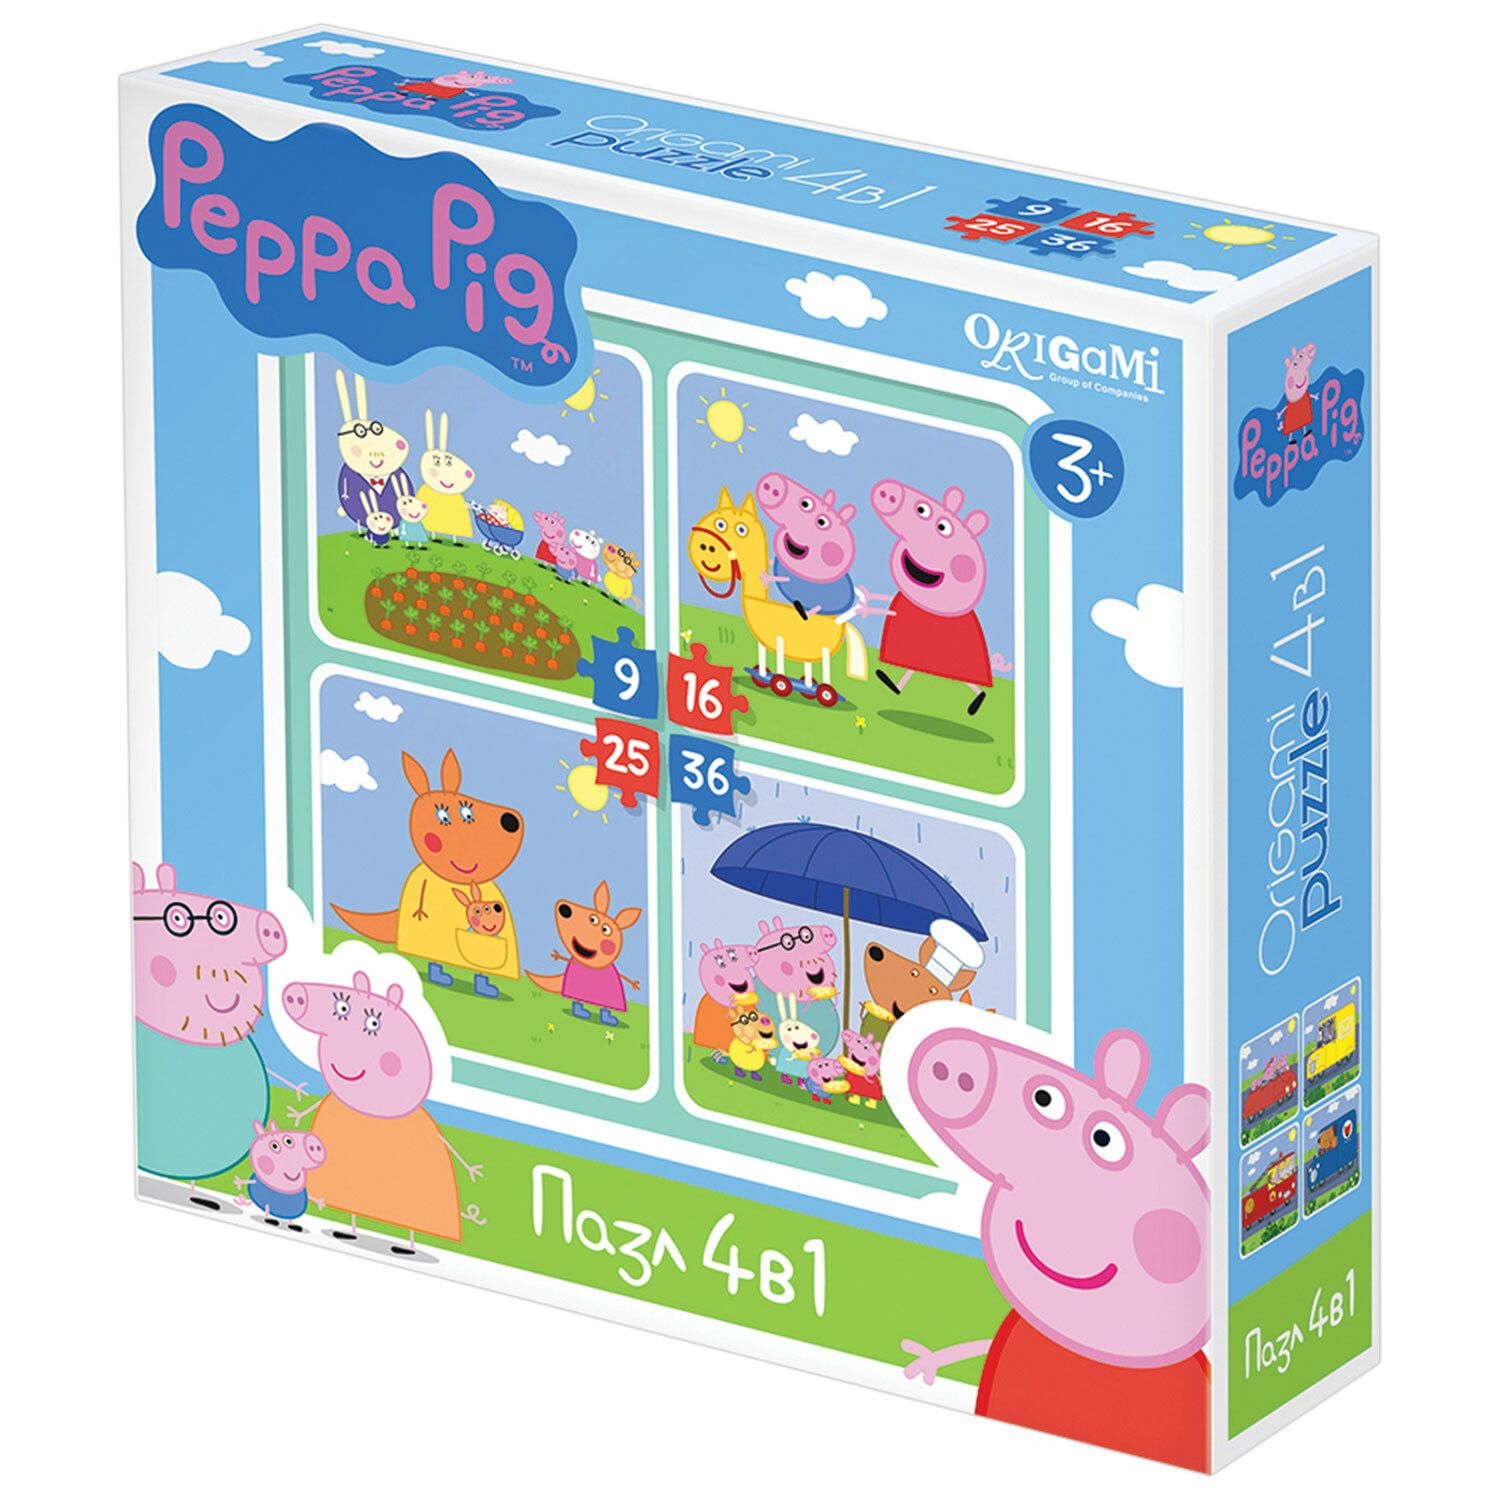 """Puzzle Peppa Pig """"On vacation"""", """"4 in 1"""", 9-16-25-36 elements, ORIGAMI"""